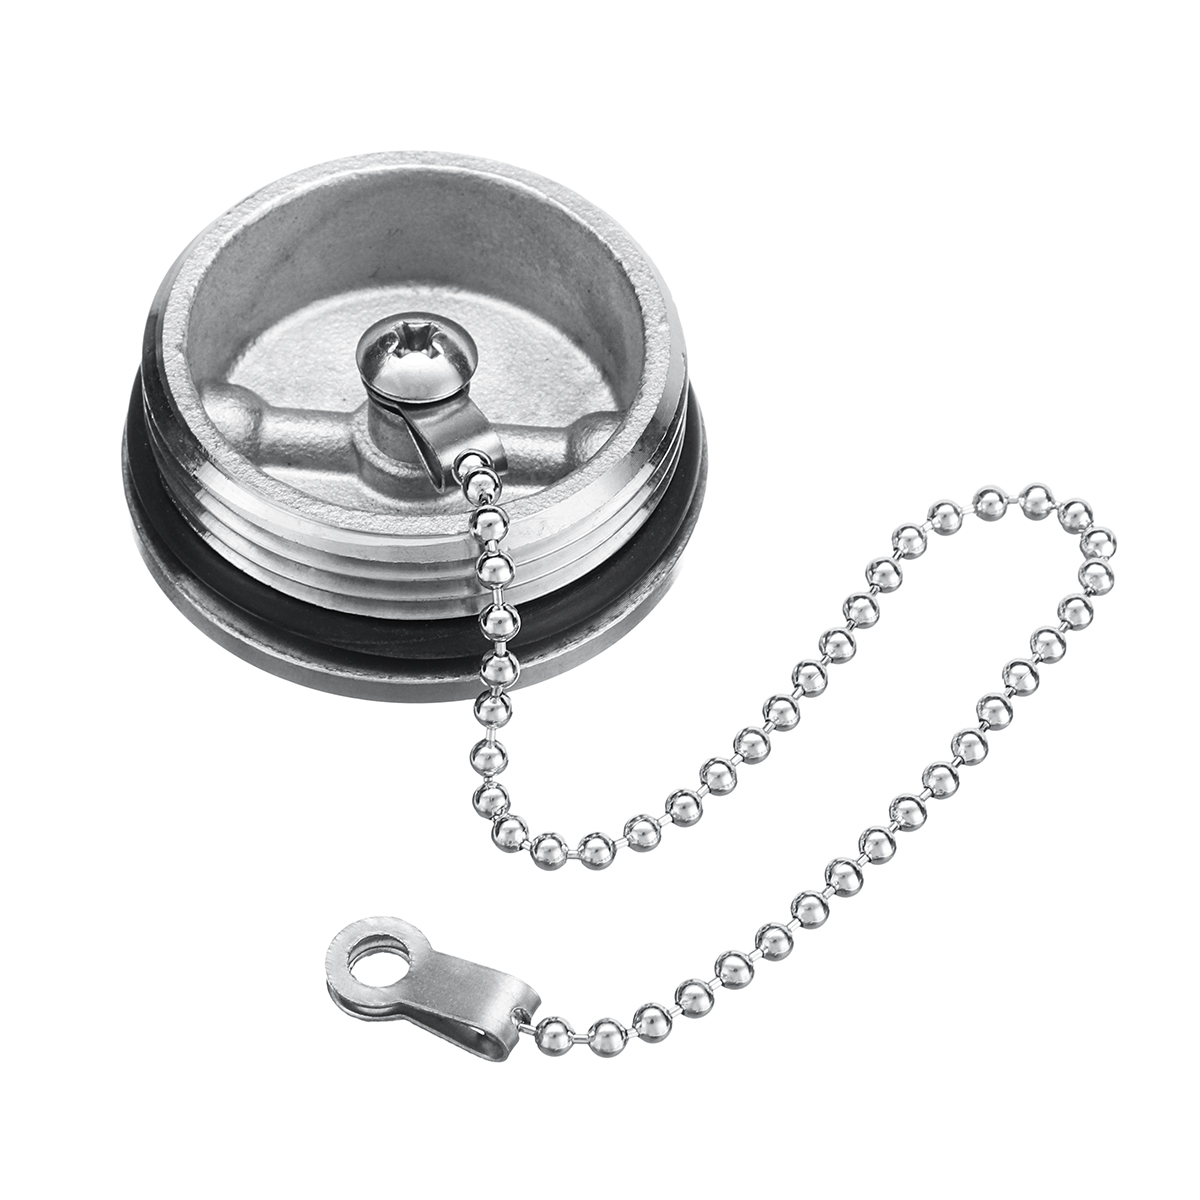 Boat Deck Fill Oil Filler Replacement Cap with Chain Stainless Steel Fuel Water Gas